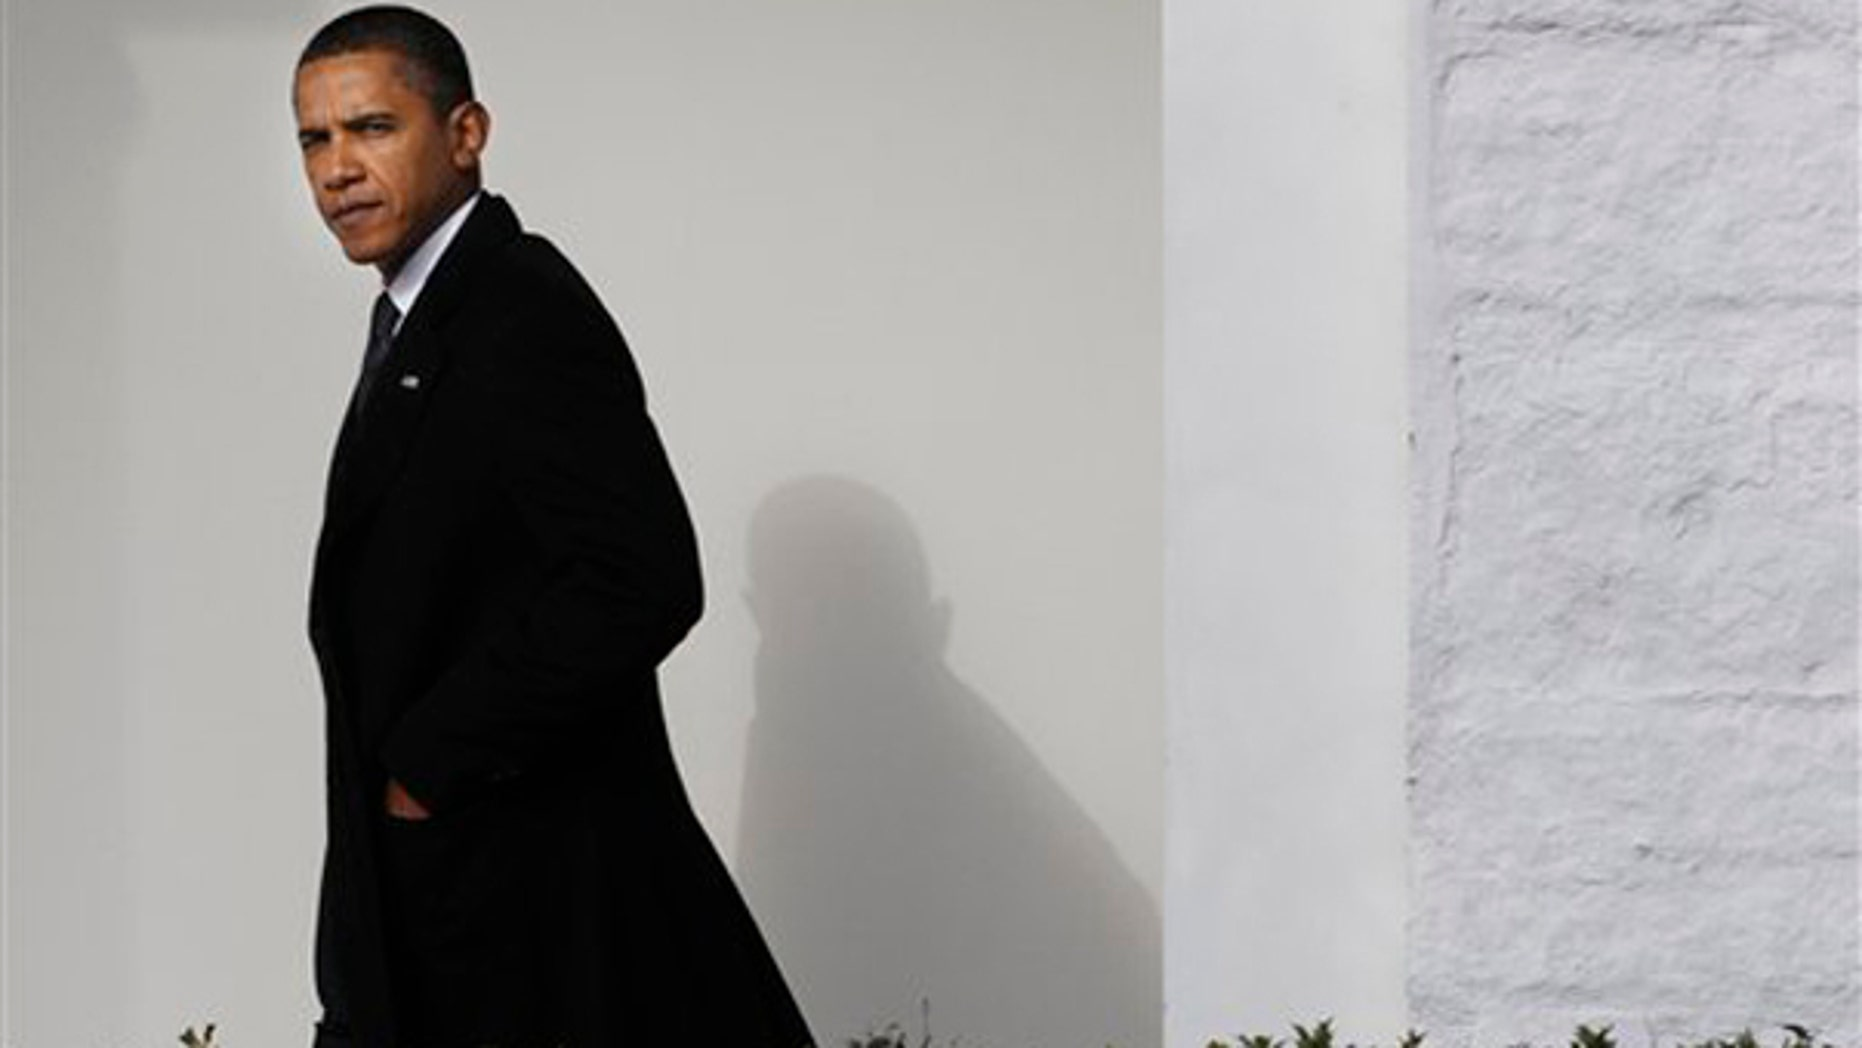 President Barack Obama walks back to the Oval Office of the White House in Washington, Tuesday, Jan. 12, 2010, after traveling to Delaware to attend the funeral services for Jean Biden, mother of Vice President Joe Biden. (AP Photo/Pablo Martinez Monsivais)